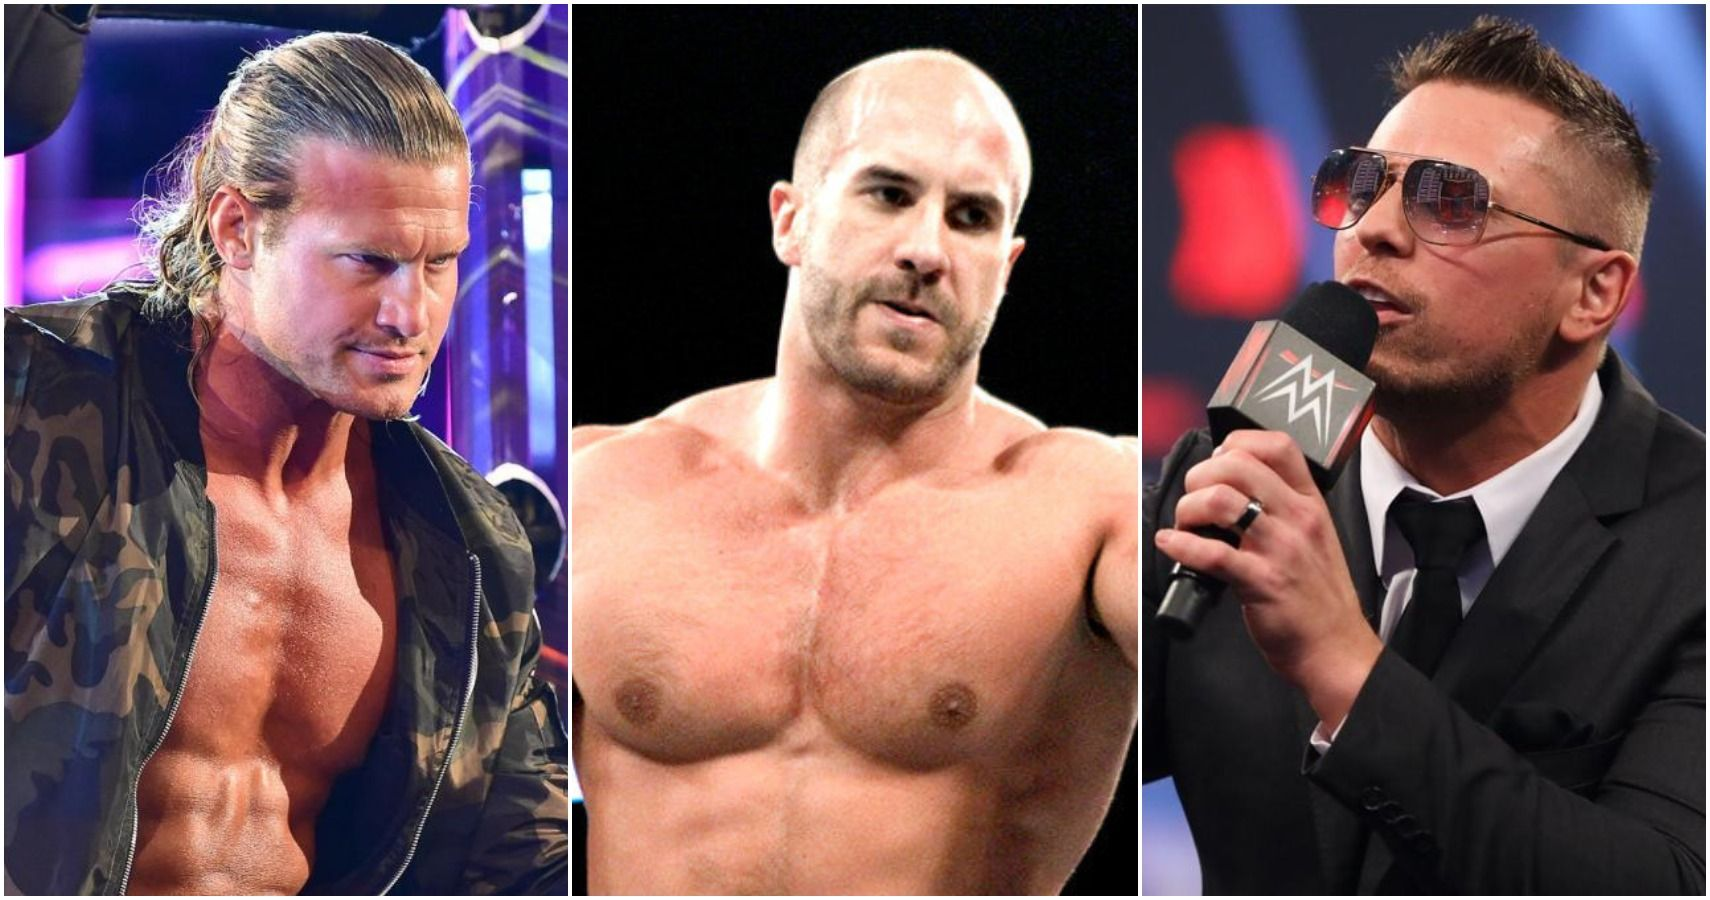 Wrestlers Staying In WWE For Too Long Hurts Their Legacies